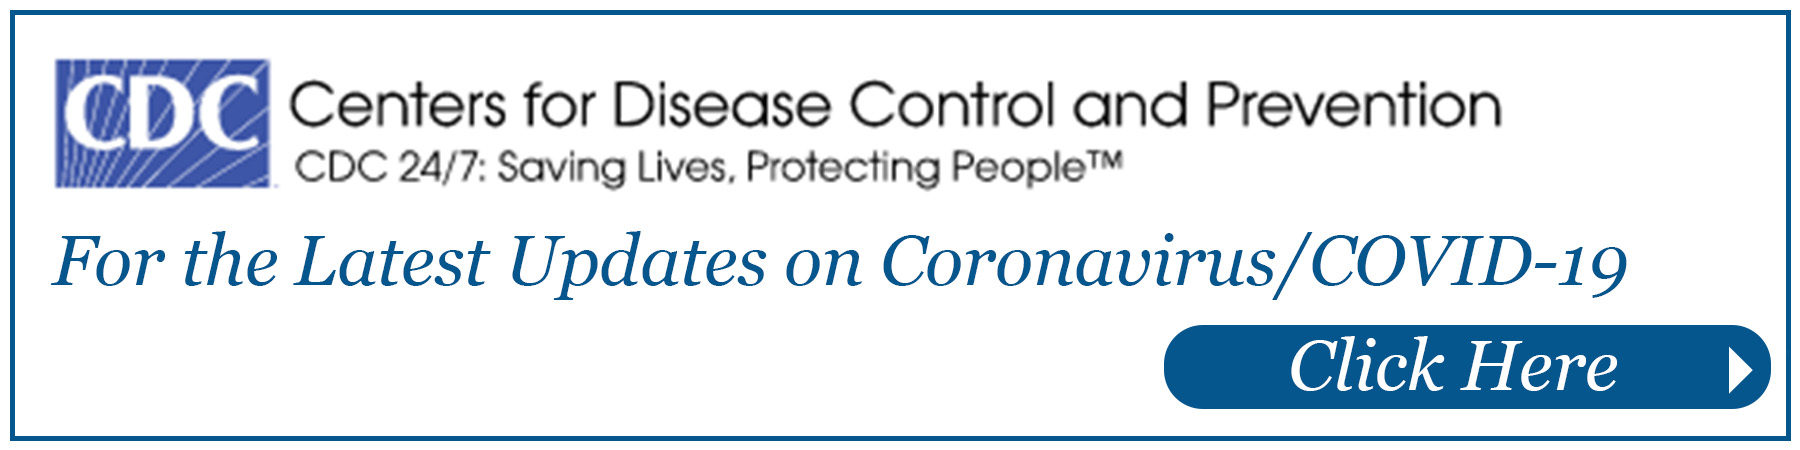 Center for Disease Control CDC website for Coronavirus Information and latest news